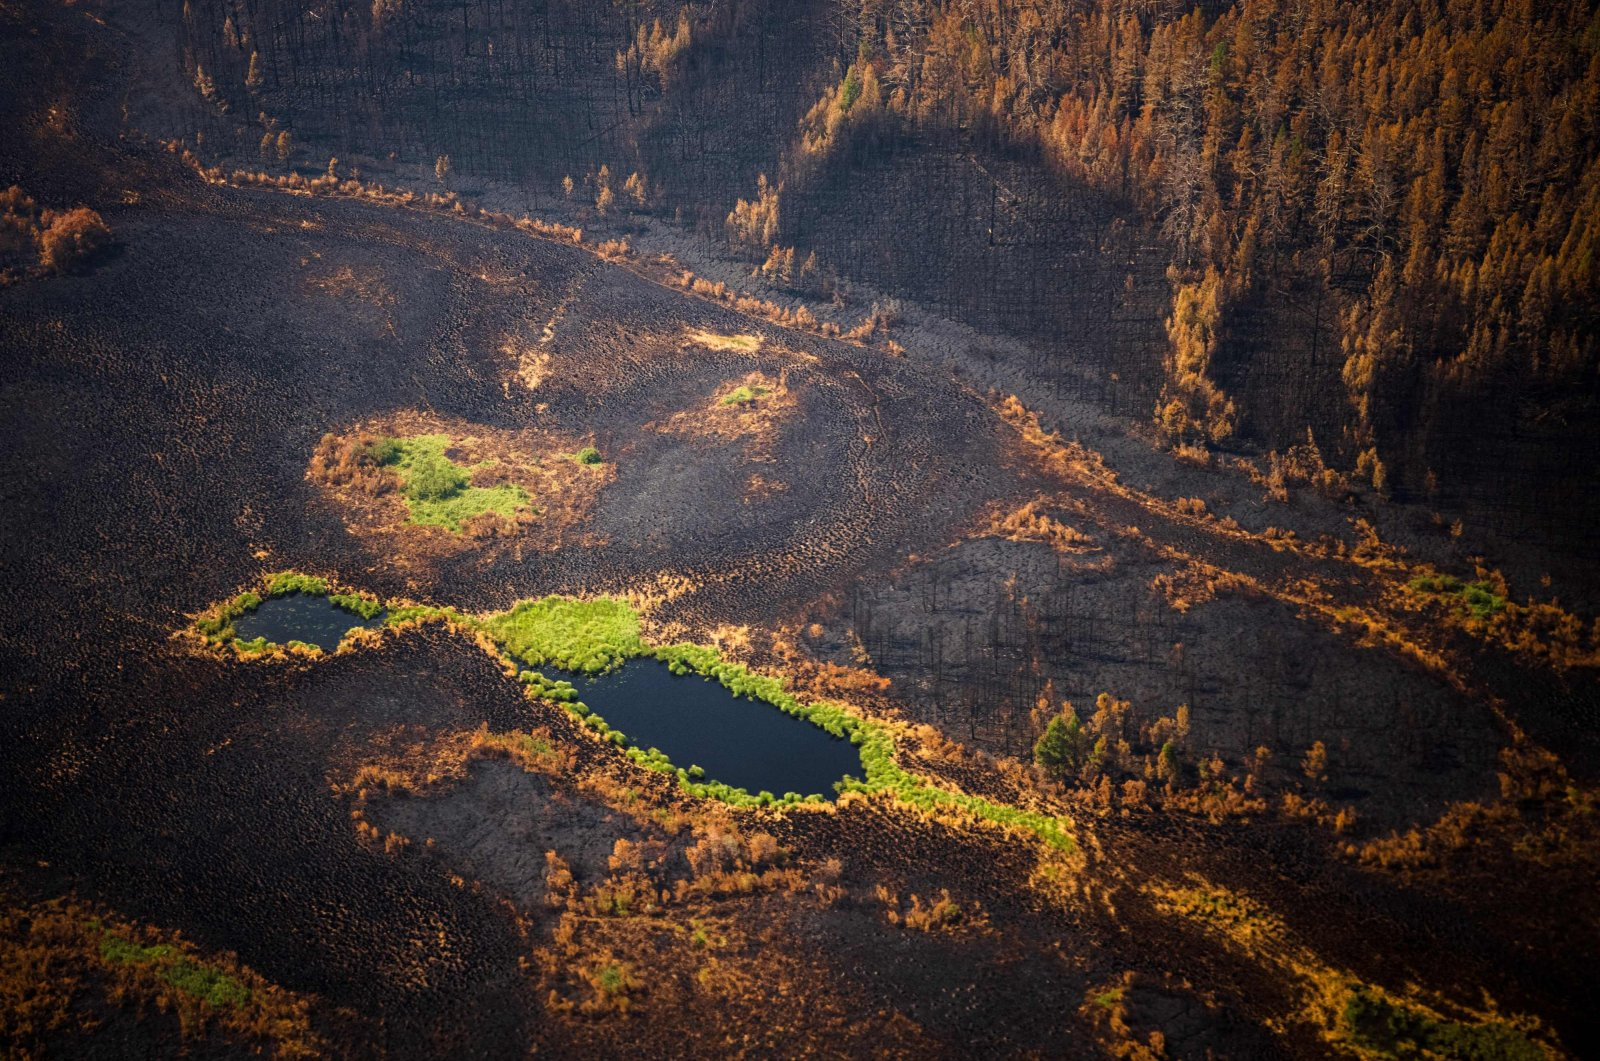 A burned forest at Gorny Ulus area west of Yakutsk, in the Republic of Sakha, Siberia, July 27, 2021. (AFP Photo)